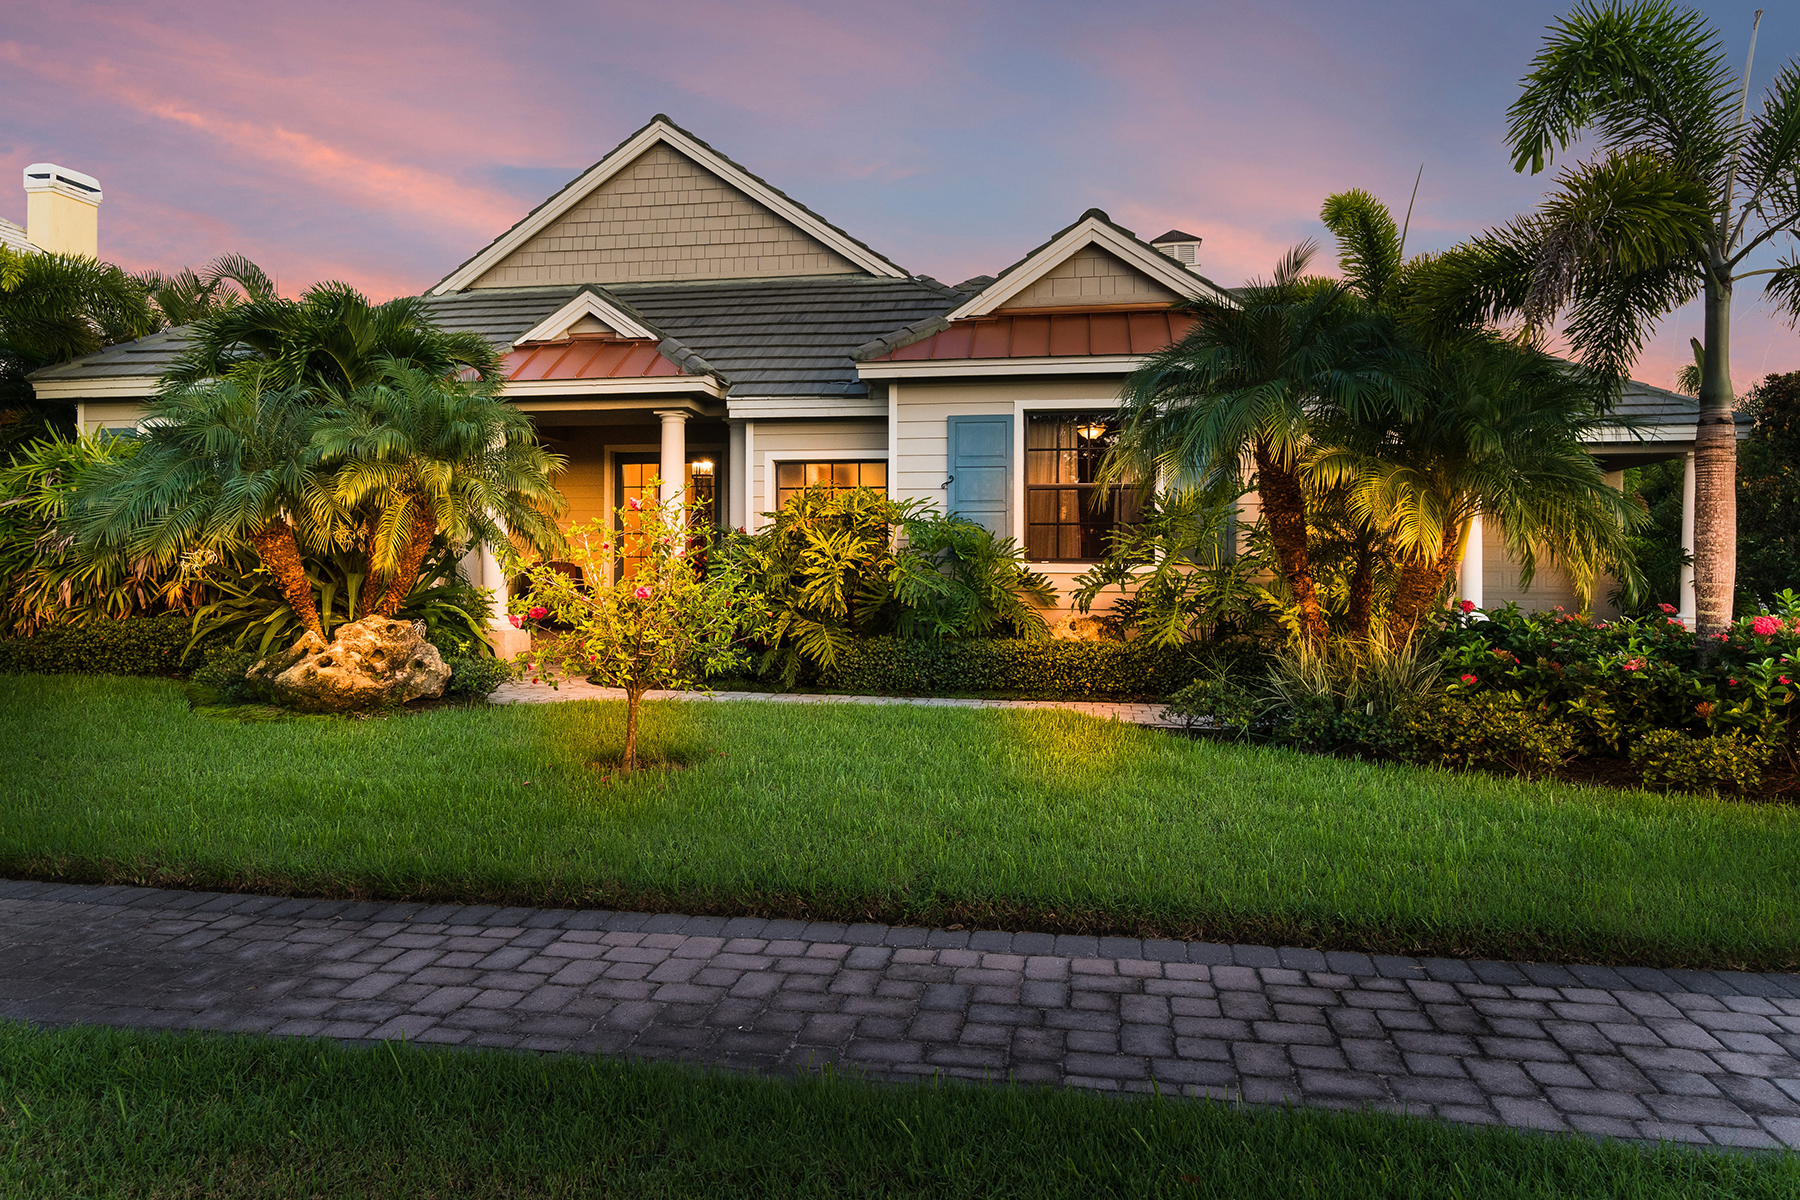 Casa Unifamiliar por un Venta en HARBOUR WALK AT THE INLETS 537 Fore Dr Bradenton, Florida, 34208 Estados Unidos